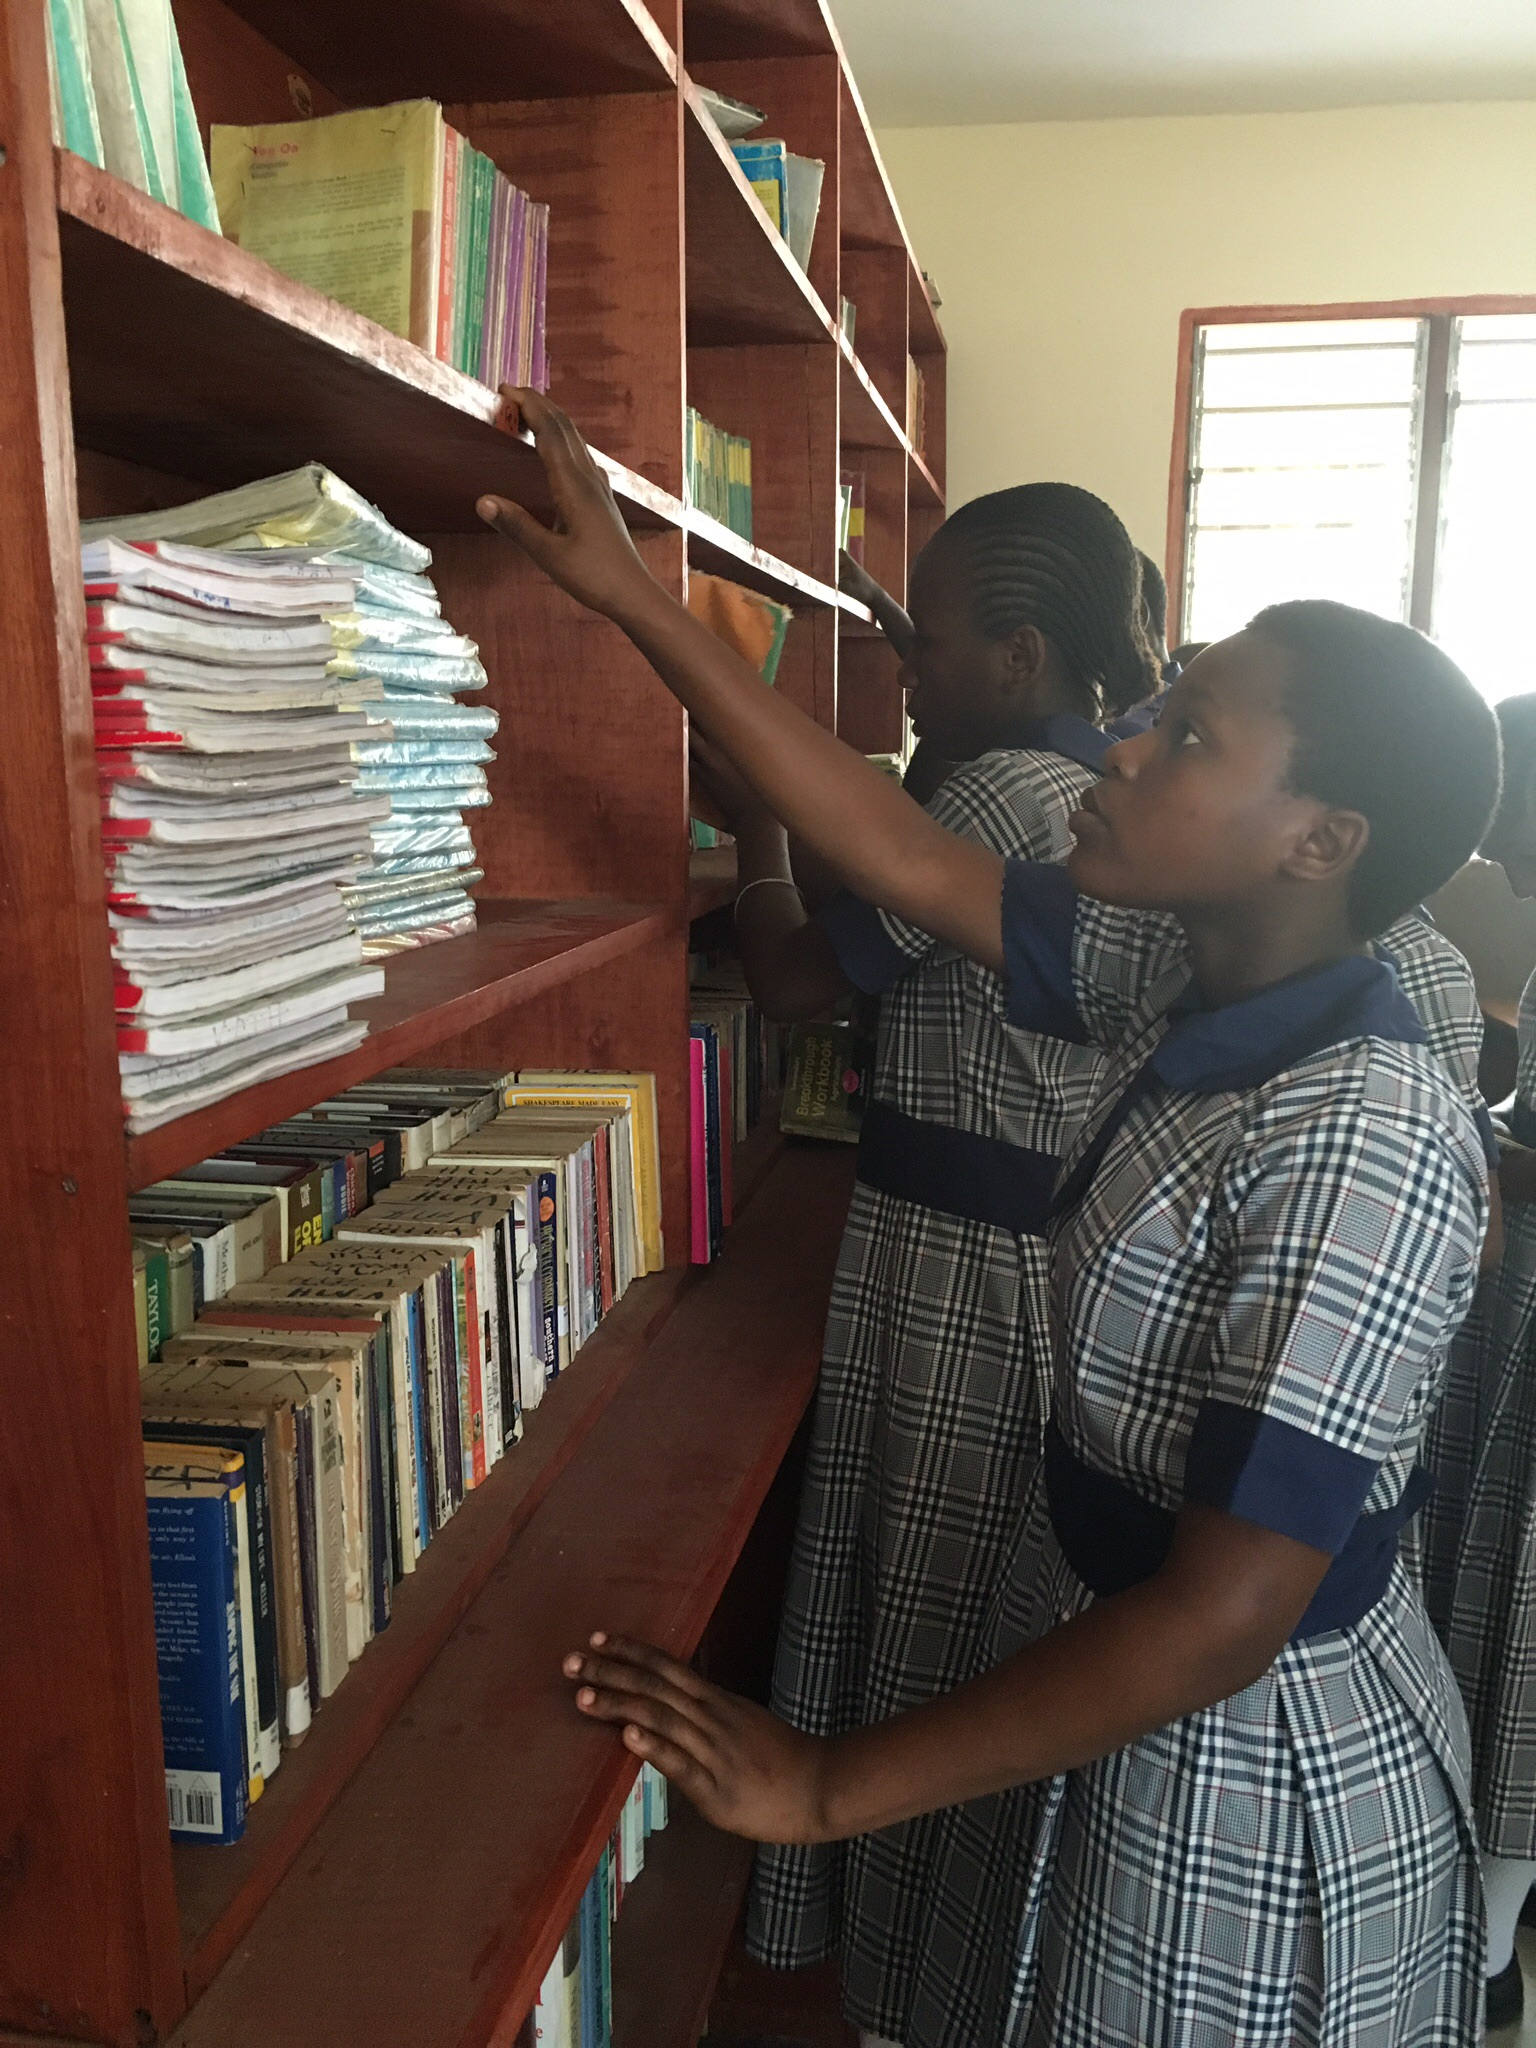 Checking out the school library